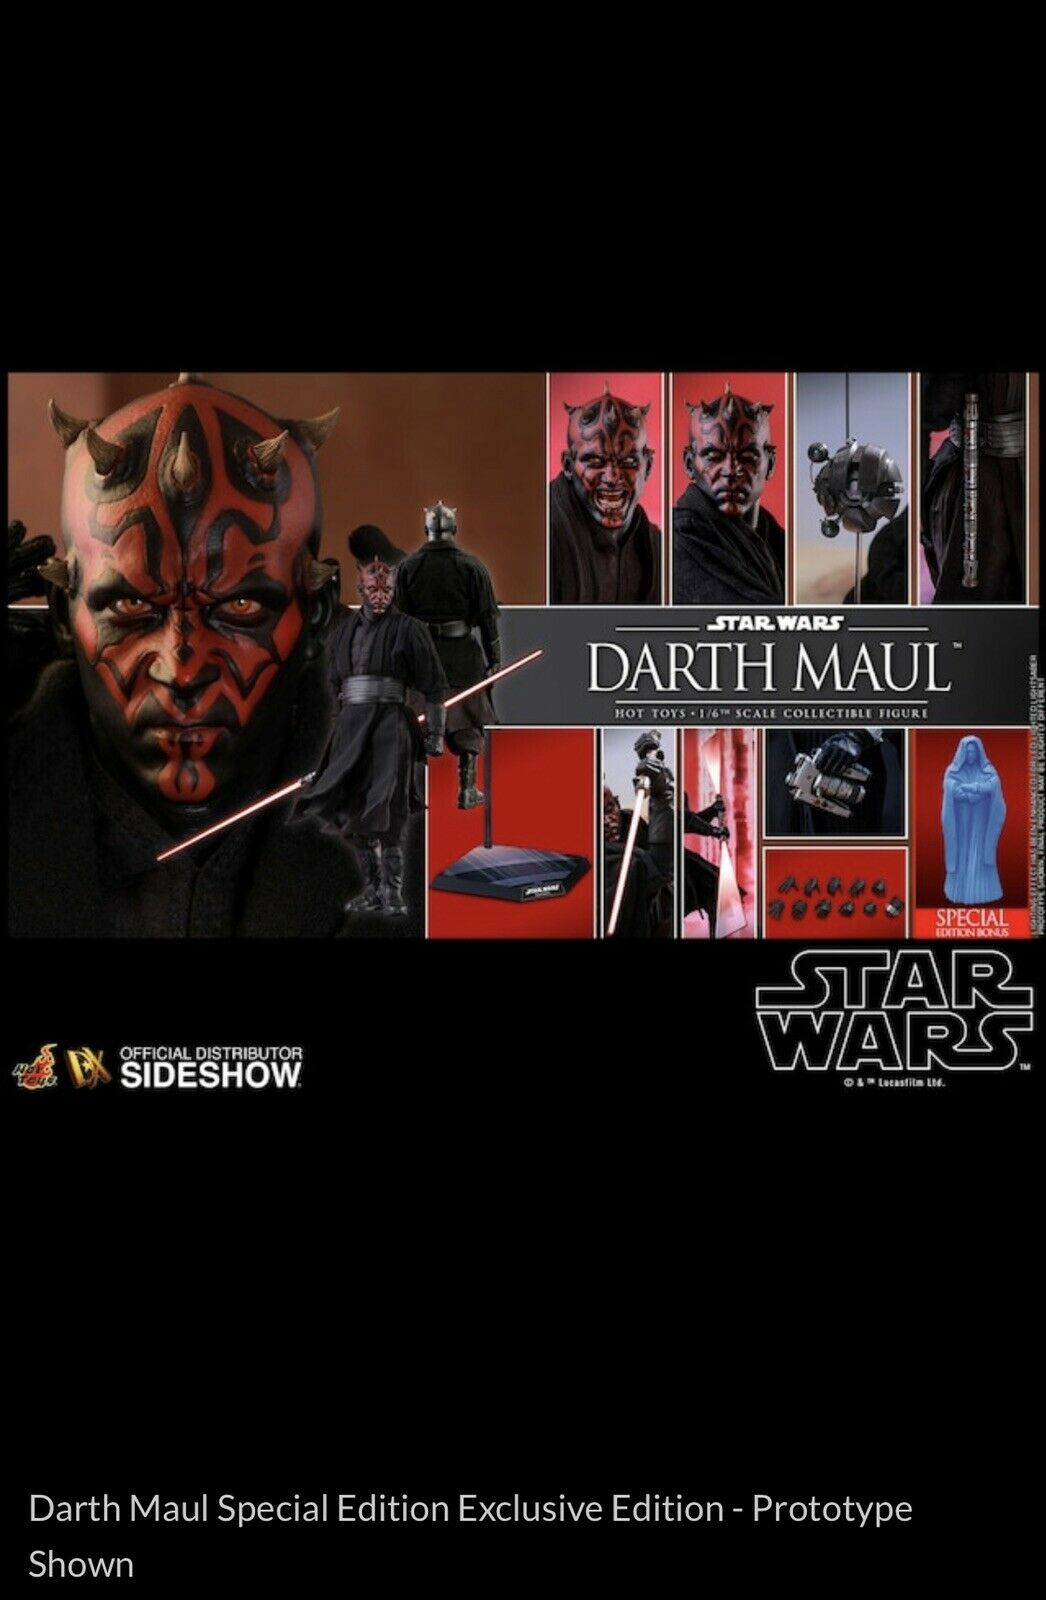 Pre Order Darth Maul Special Edition Sixth Scale Figure by Hot Toys - Exclusive